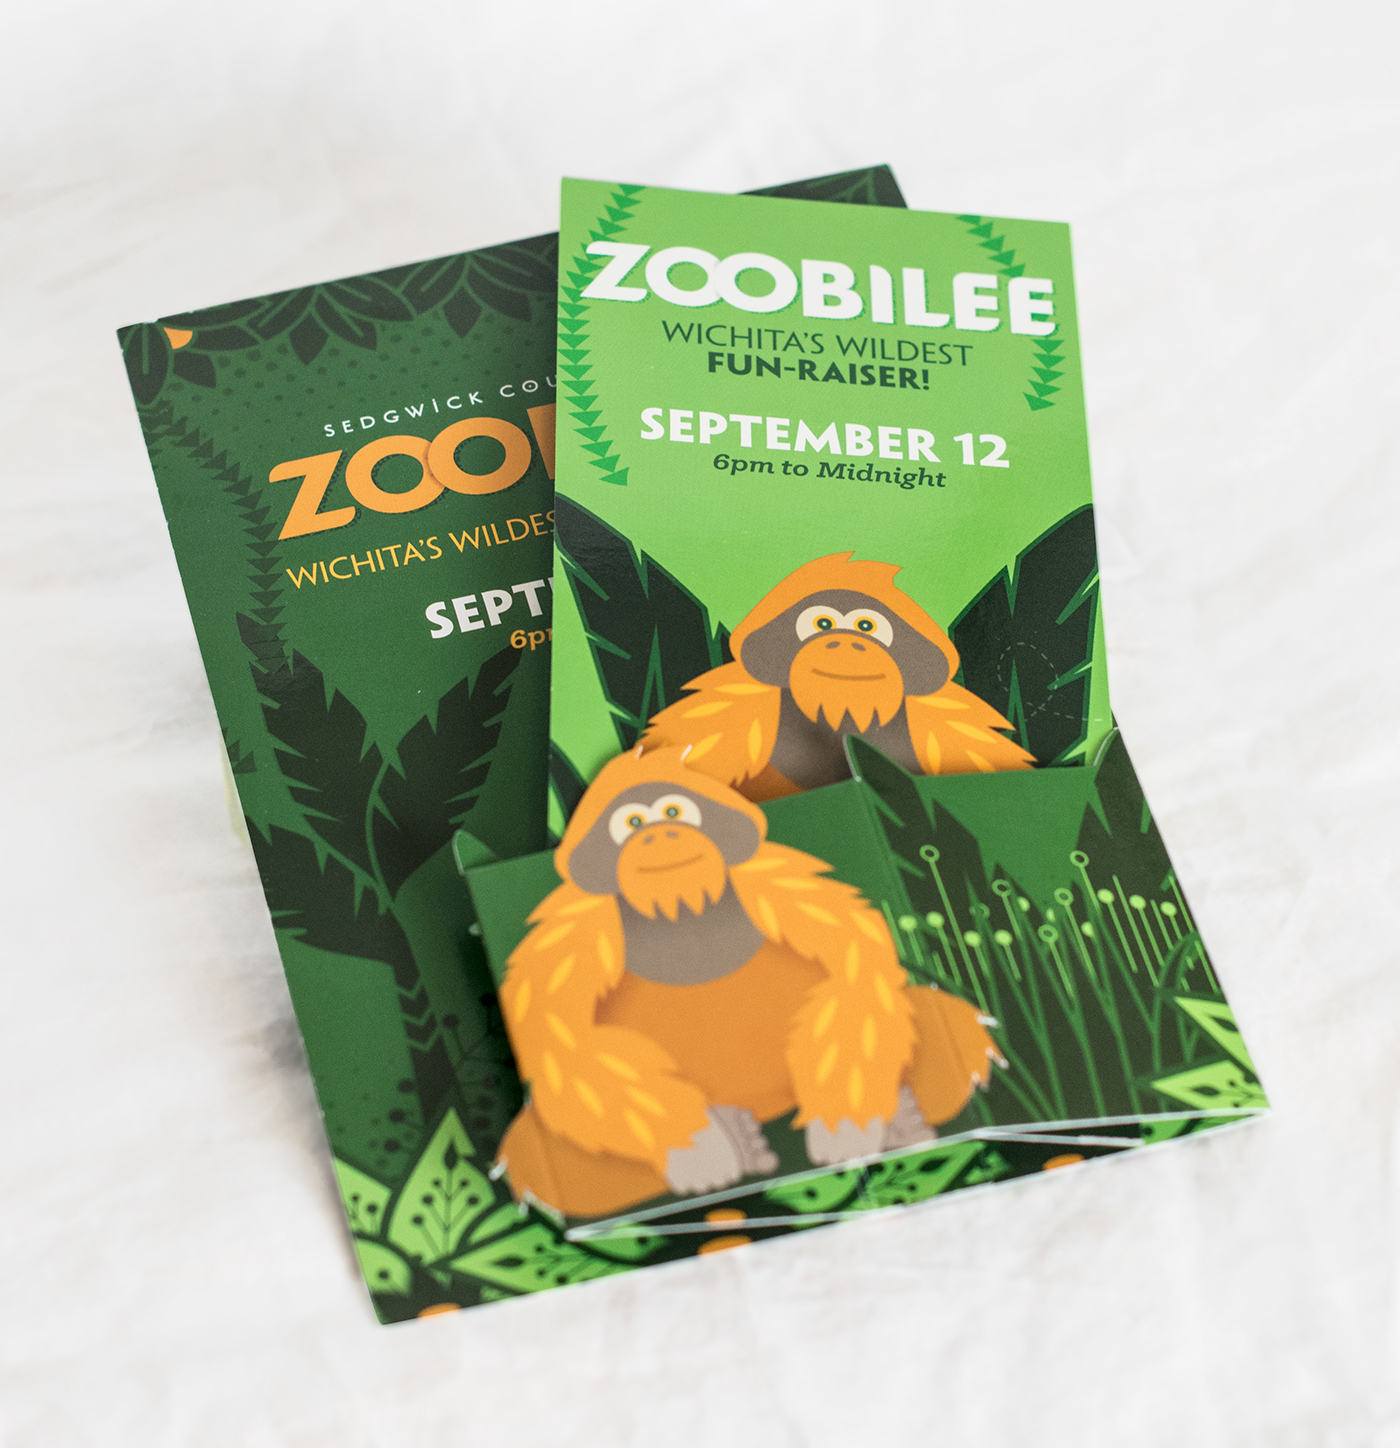 Popup invitation card of zoobilee for the Sedgwick County Zoo